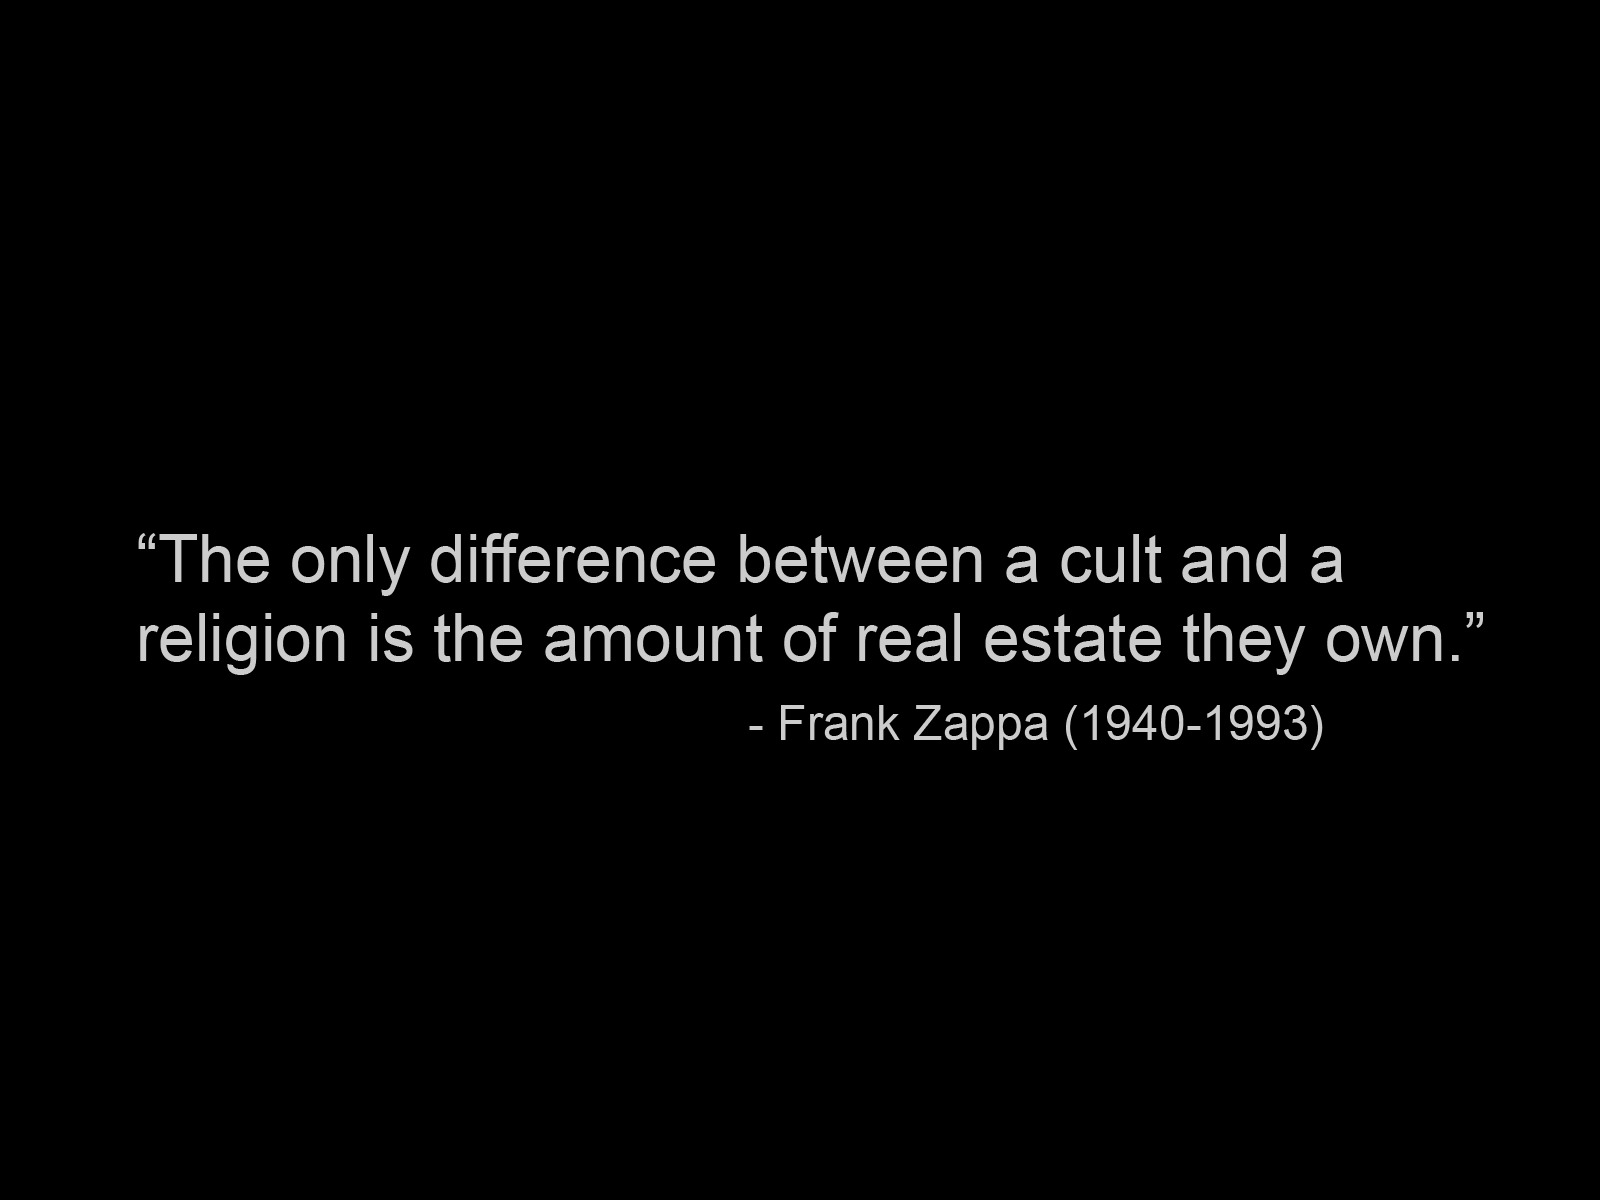 Quotes religion frank Zappa HD Wallpaper